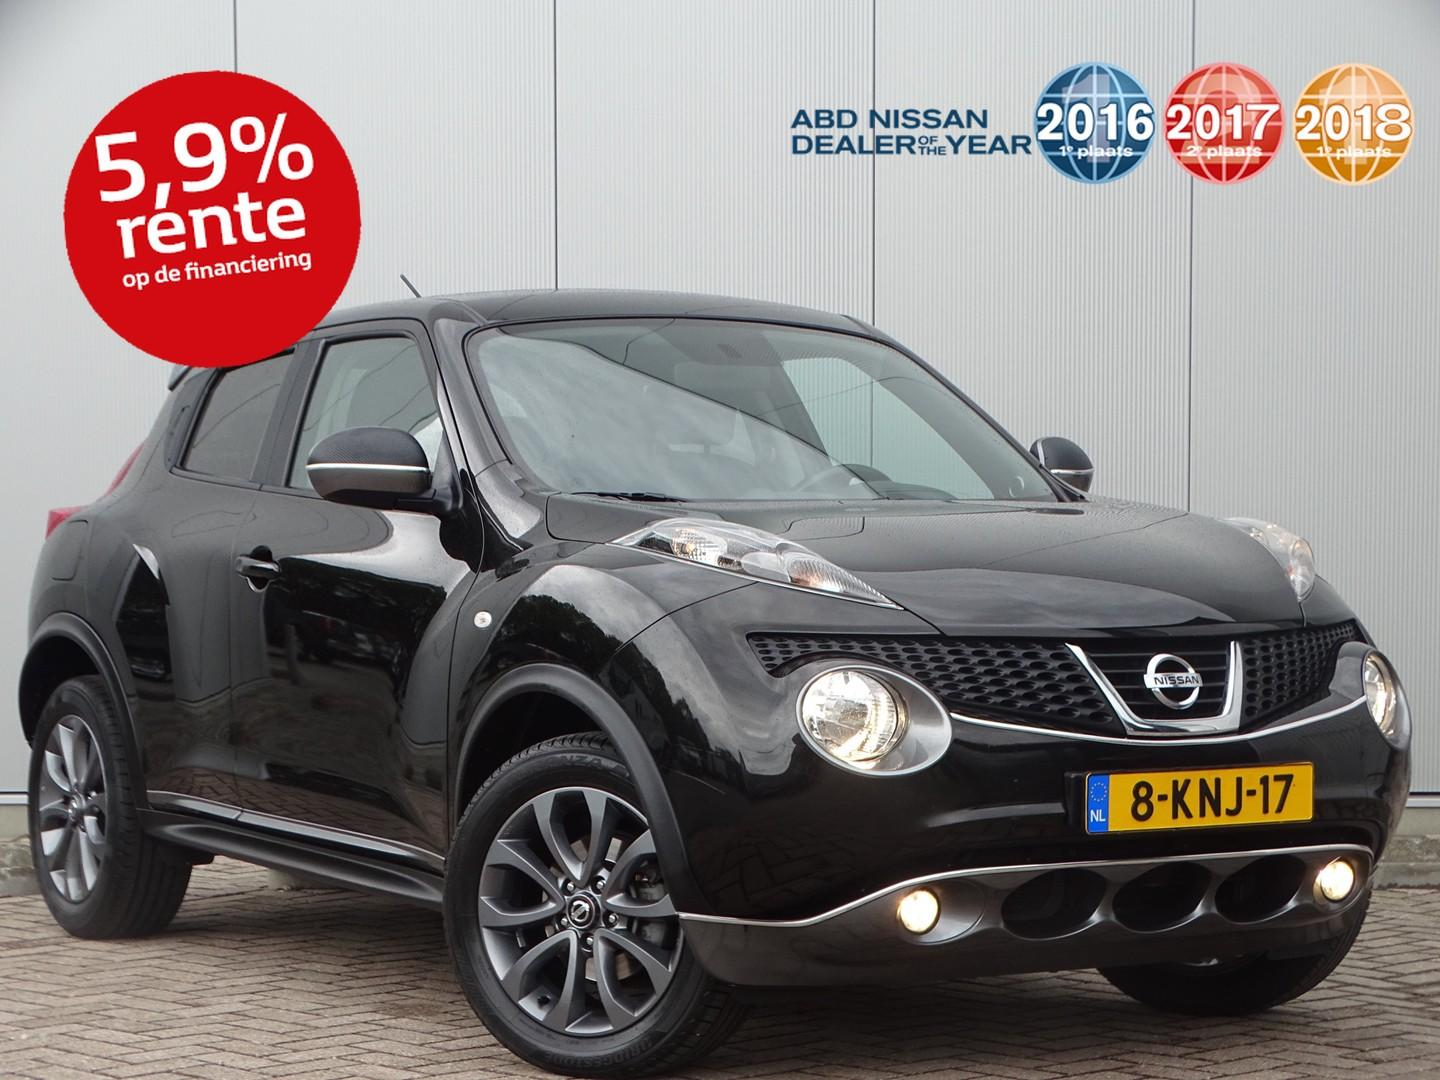 Nissan Juke 1.6 connect edition automaat